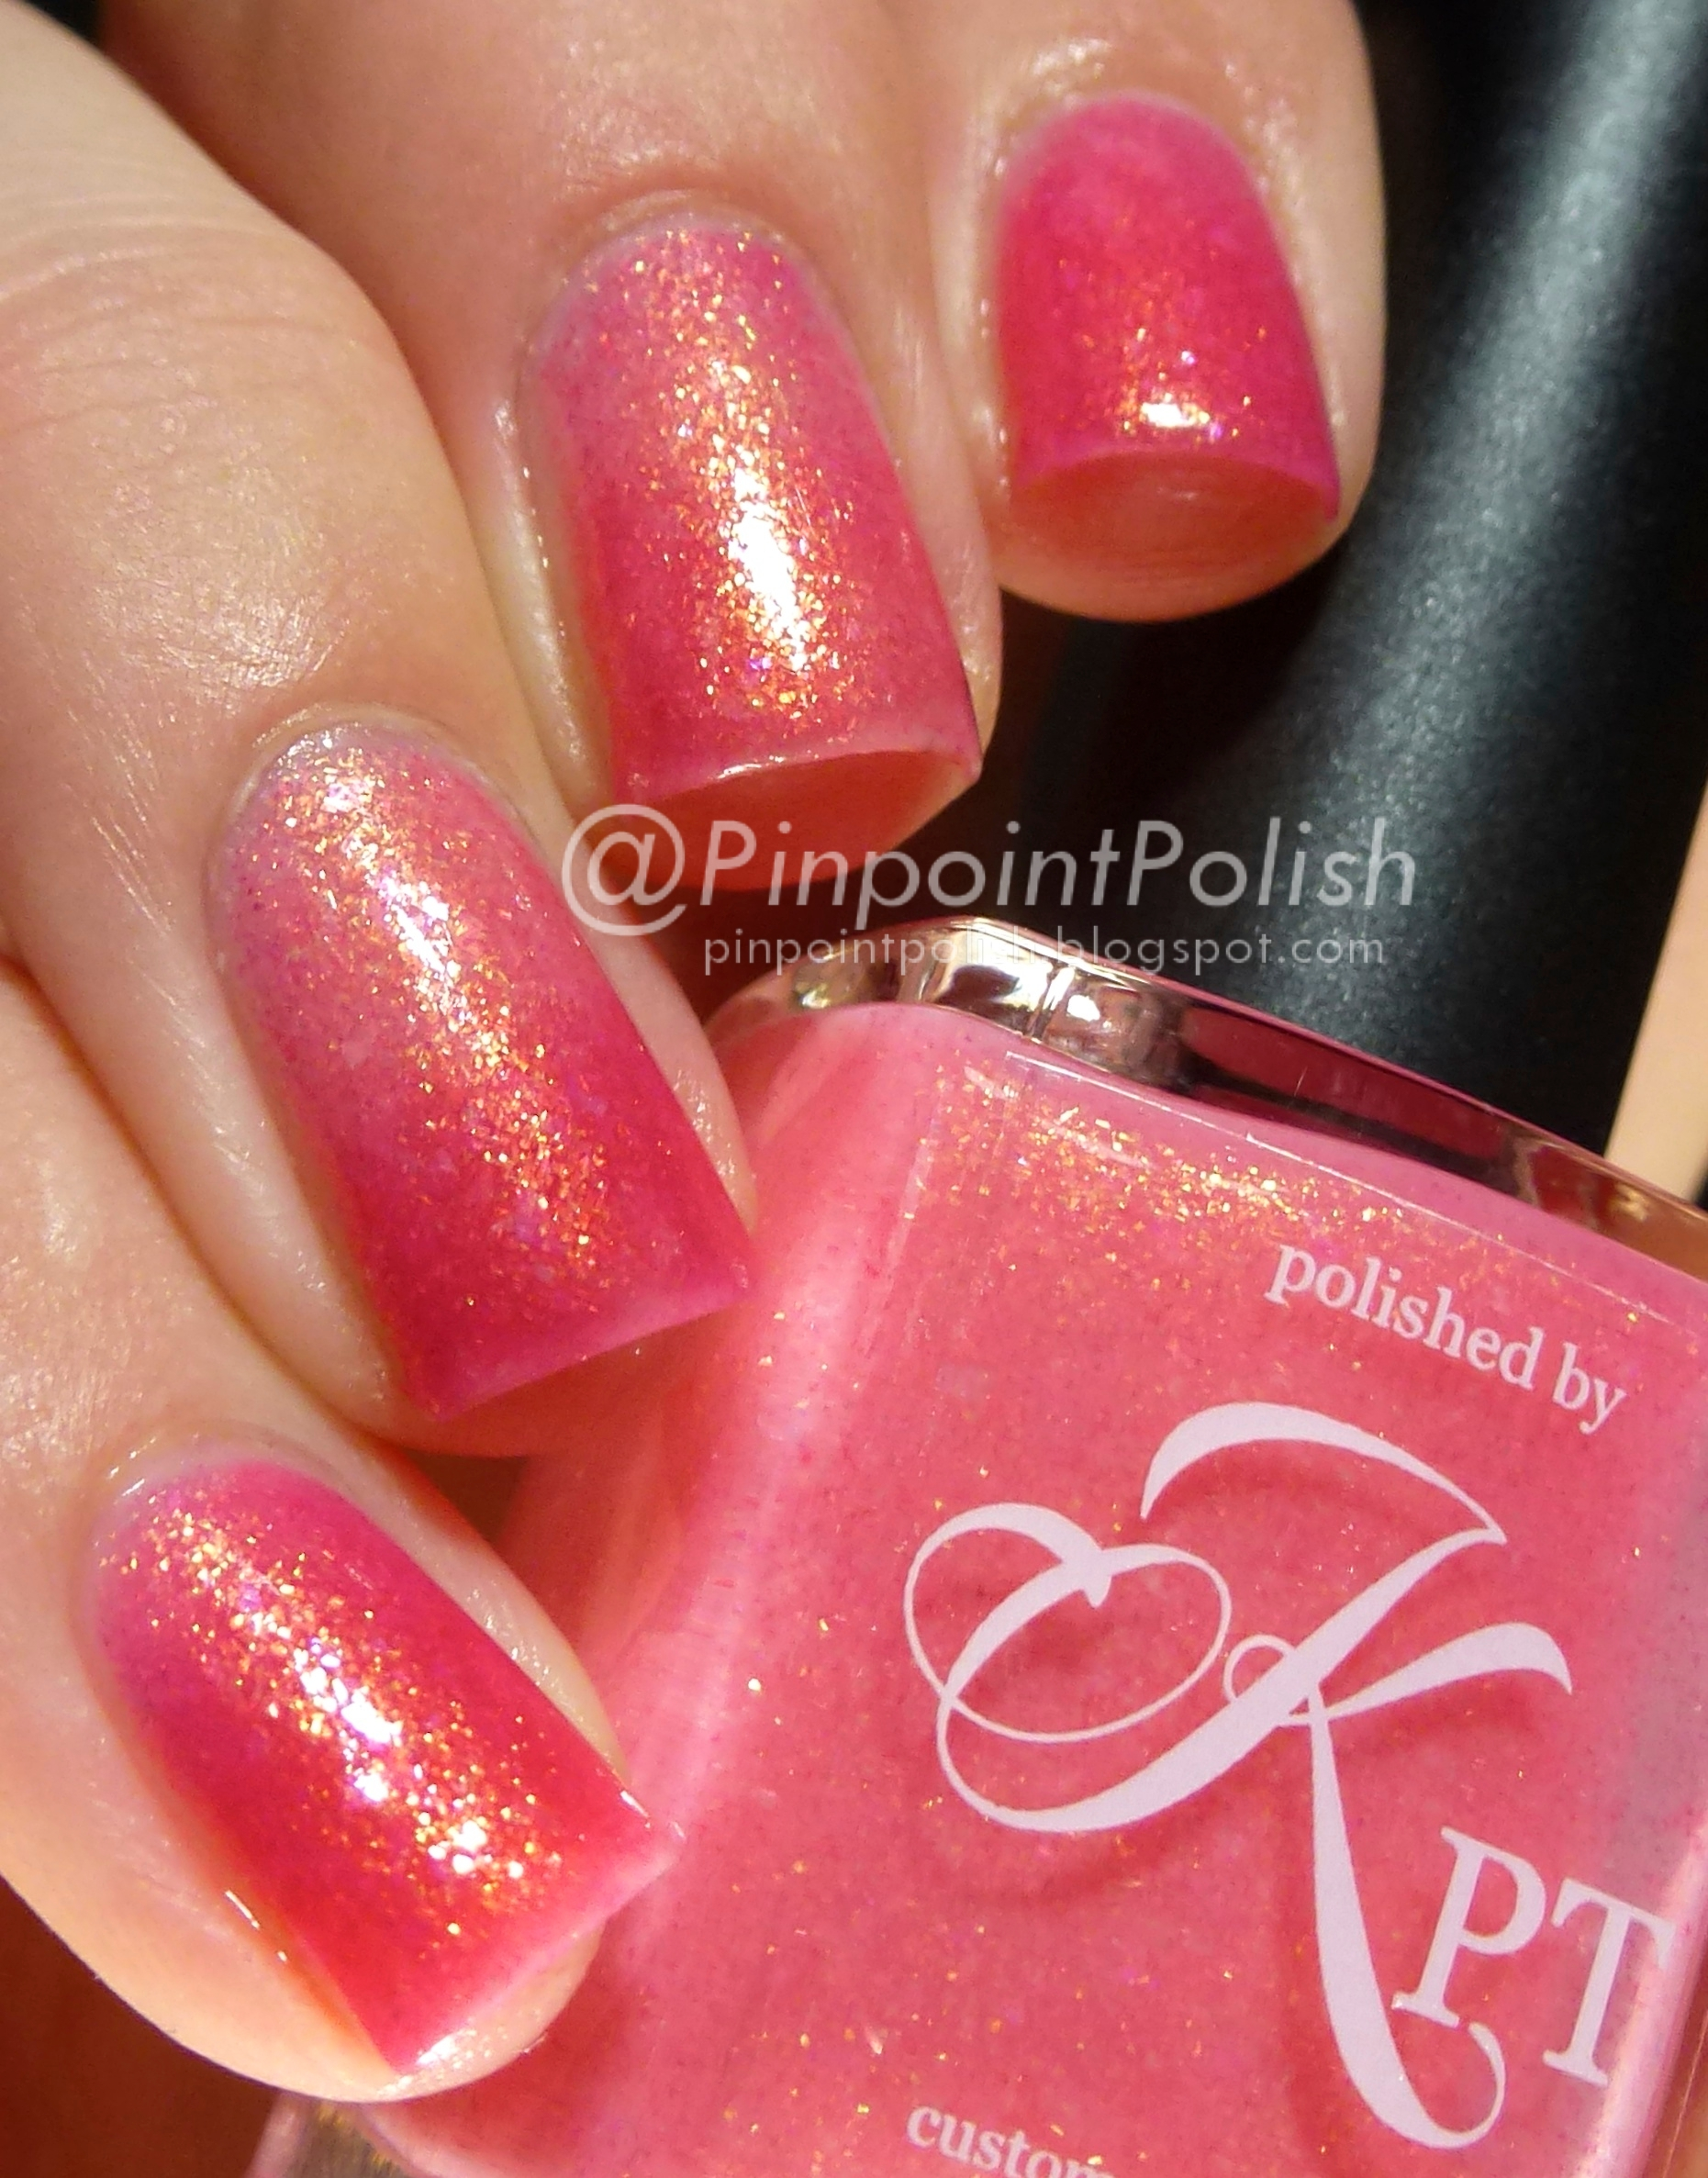 Polished by KPT, Blossoming, swatch